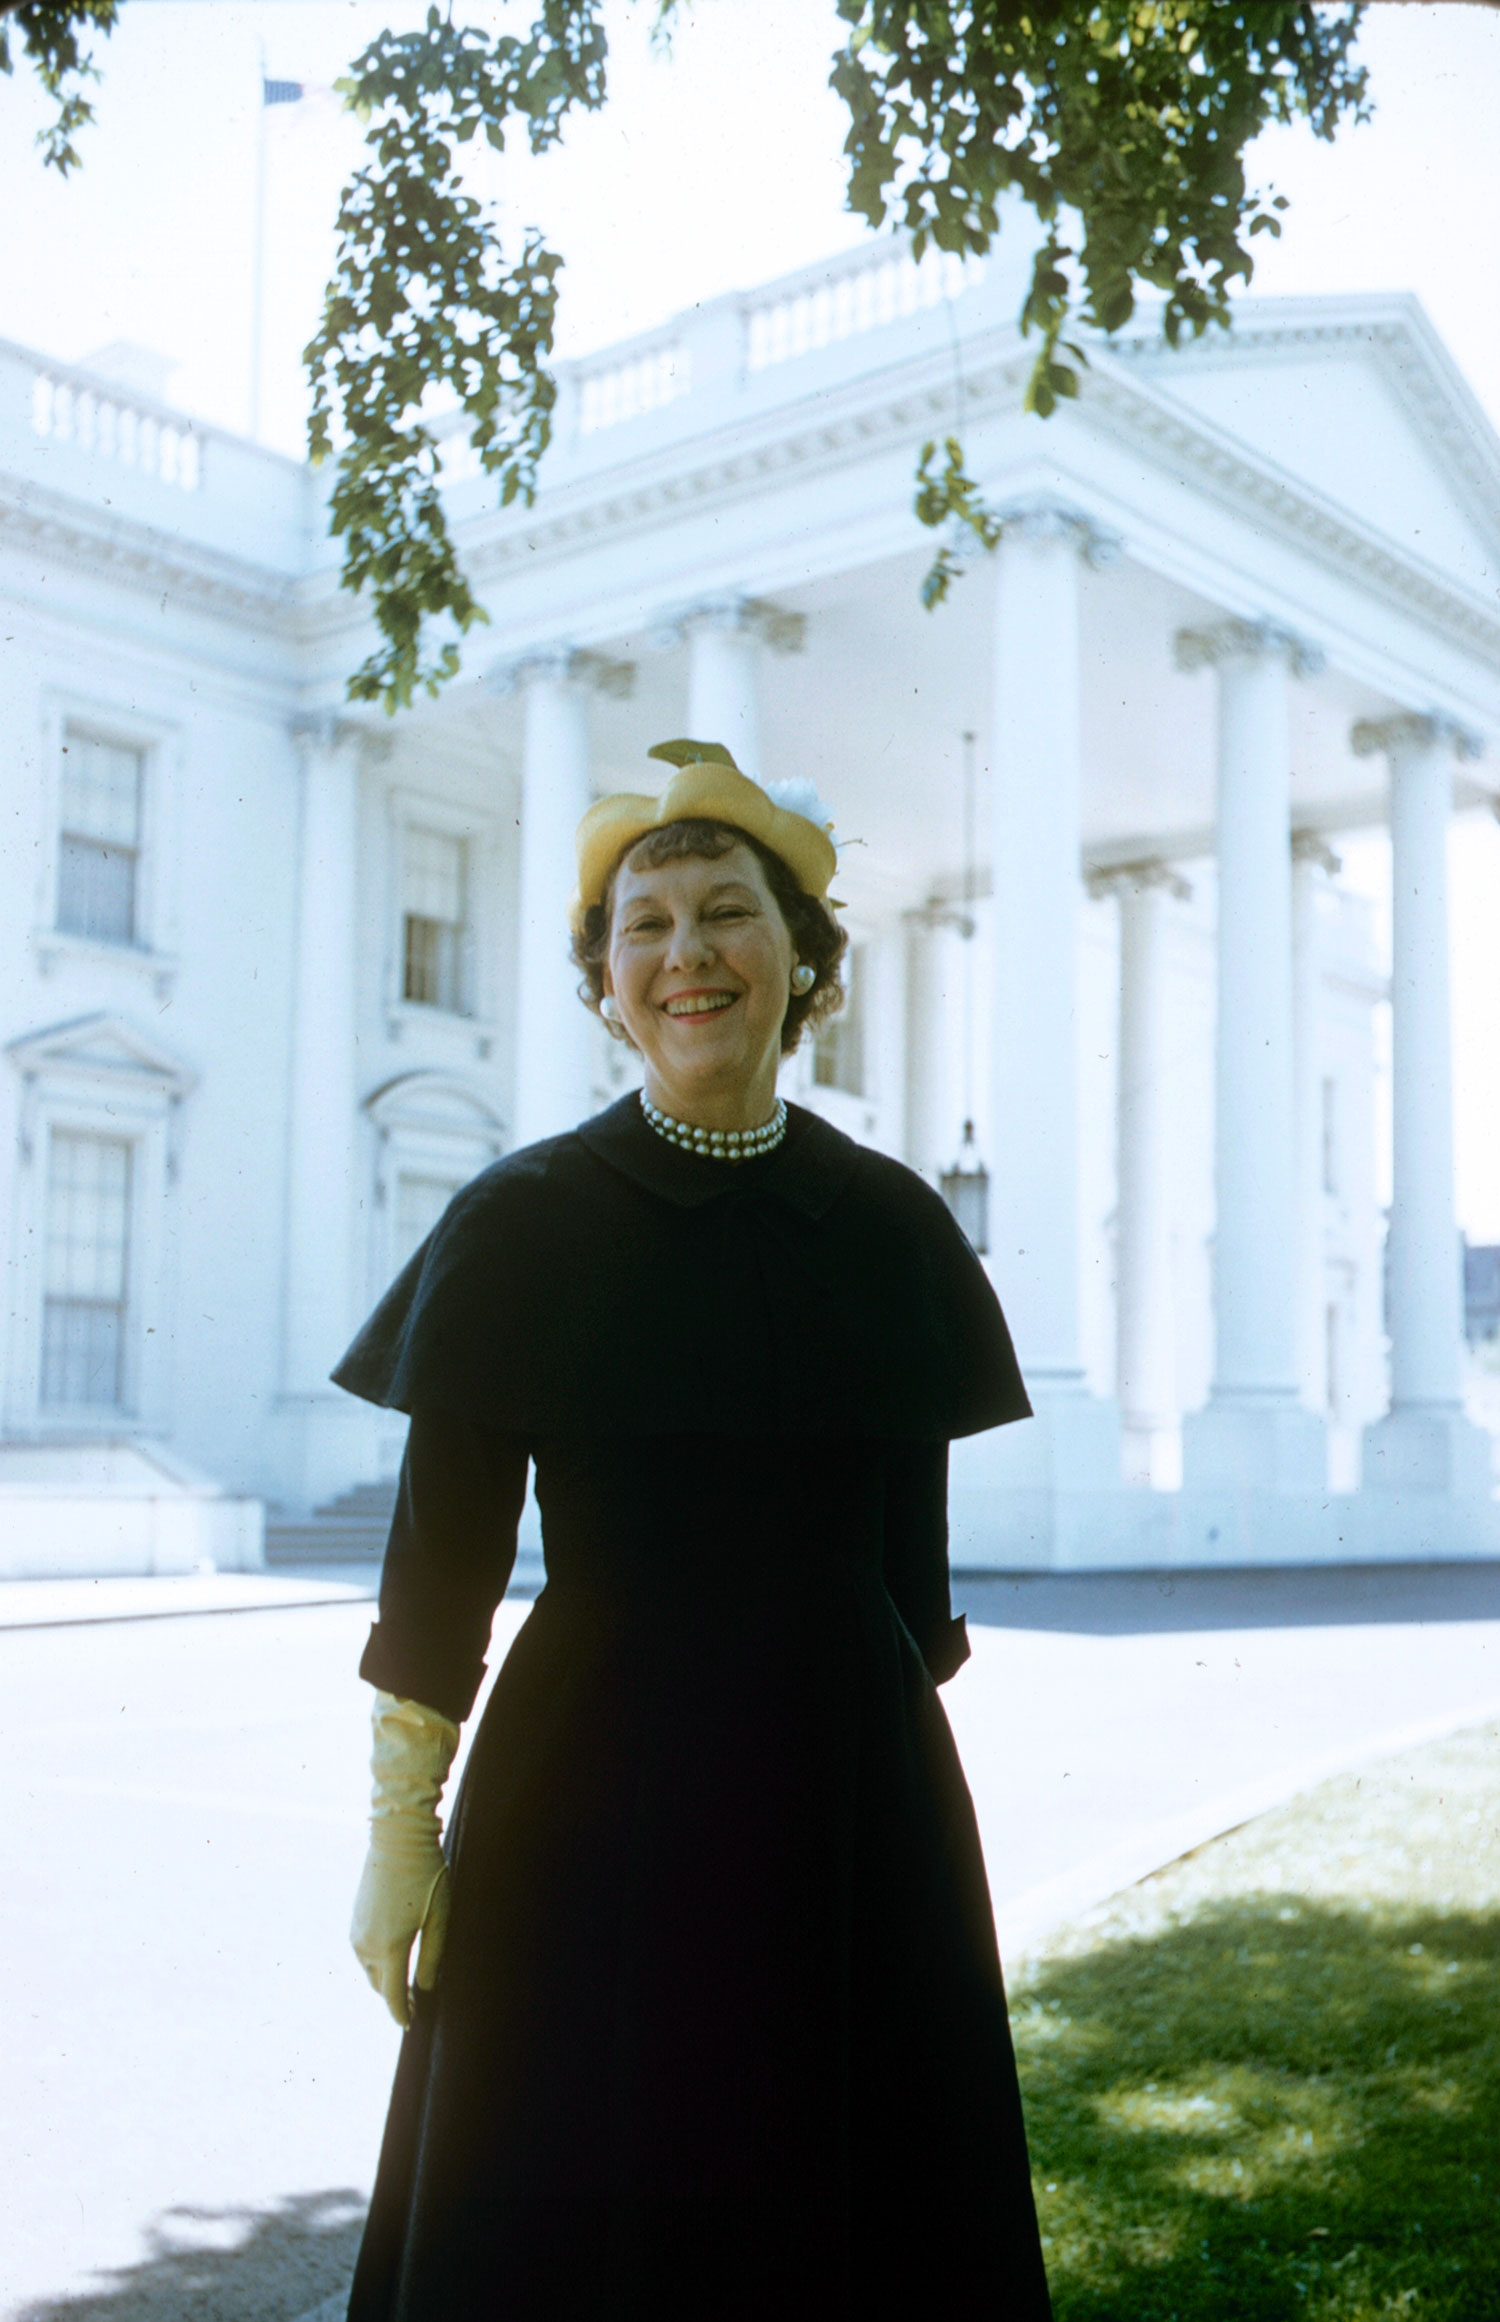 Mamie Eisenhower at the North Portico, 1958. Featured on the cover of LIFE.